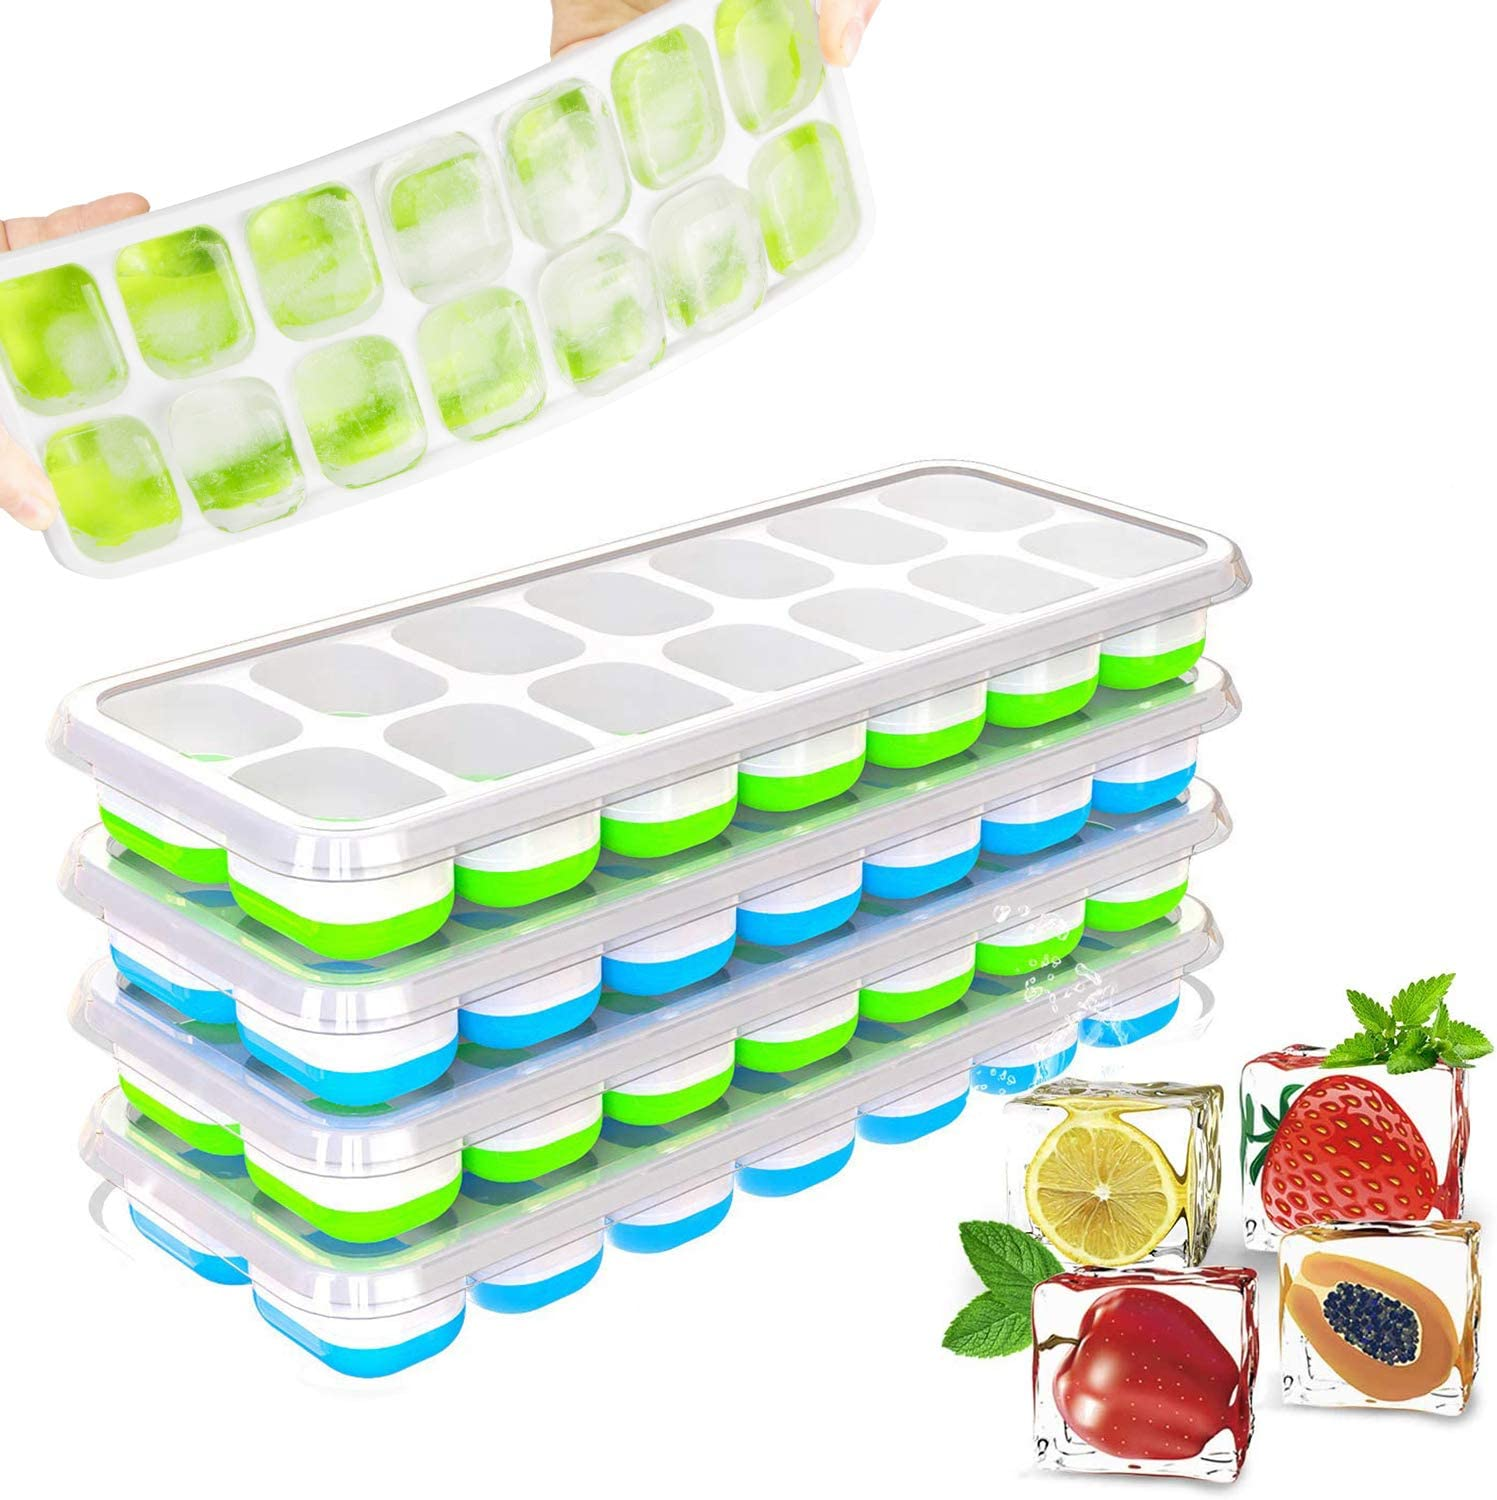 WOLLGORD Ice Cube Trays Silicone with Lid, Ice Cubes Maker Mold 4 Pack LFGB Certified & BPA Free, 56 Cubes Reusable Ice Maker for Whiskey Wine Cocktails DIY Fruit Ices Freezer Baby Food Drink